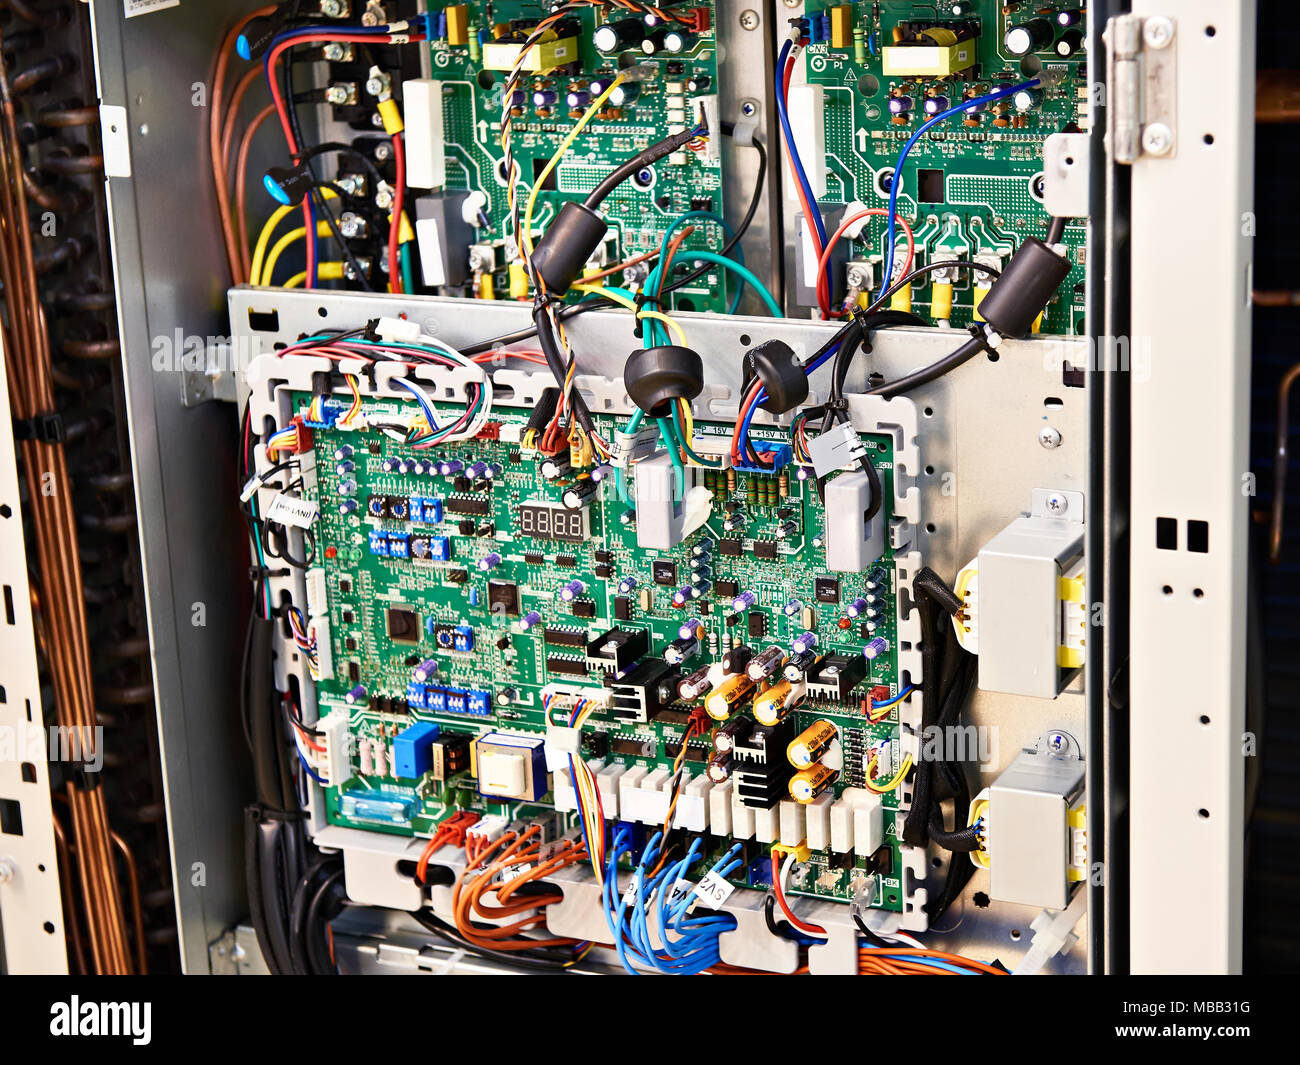 Electronic Circuits Stock Photos Images And Electronics Inside Equipment With Components Image